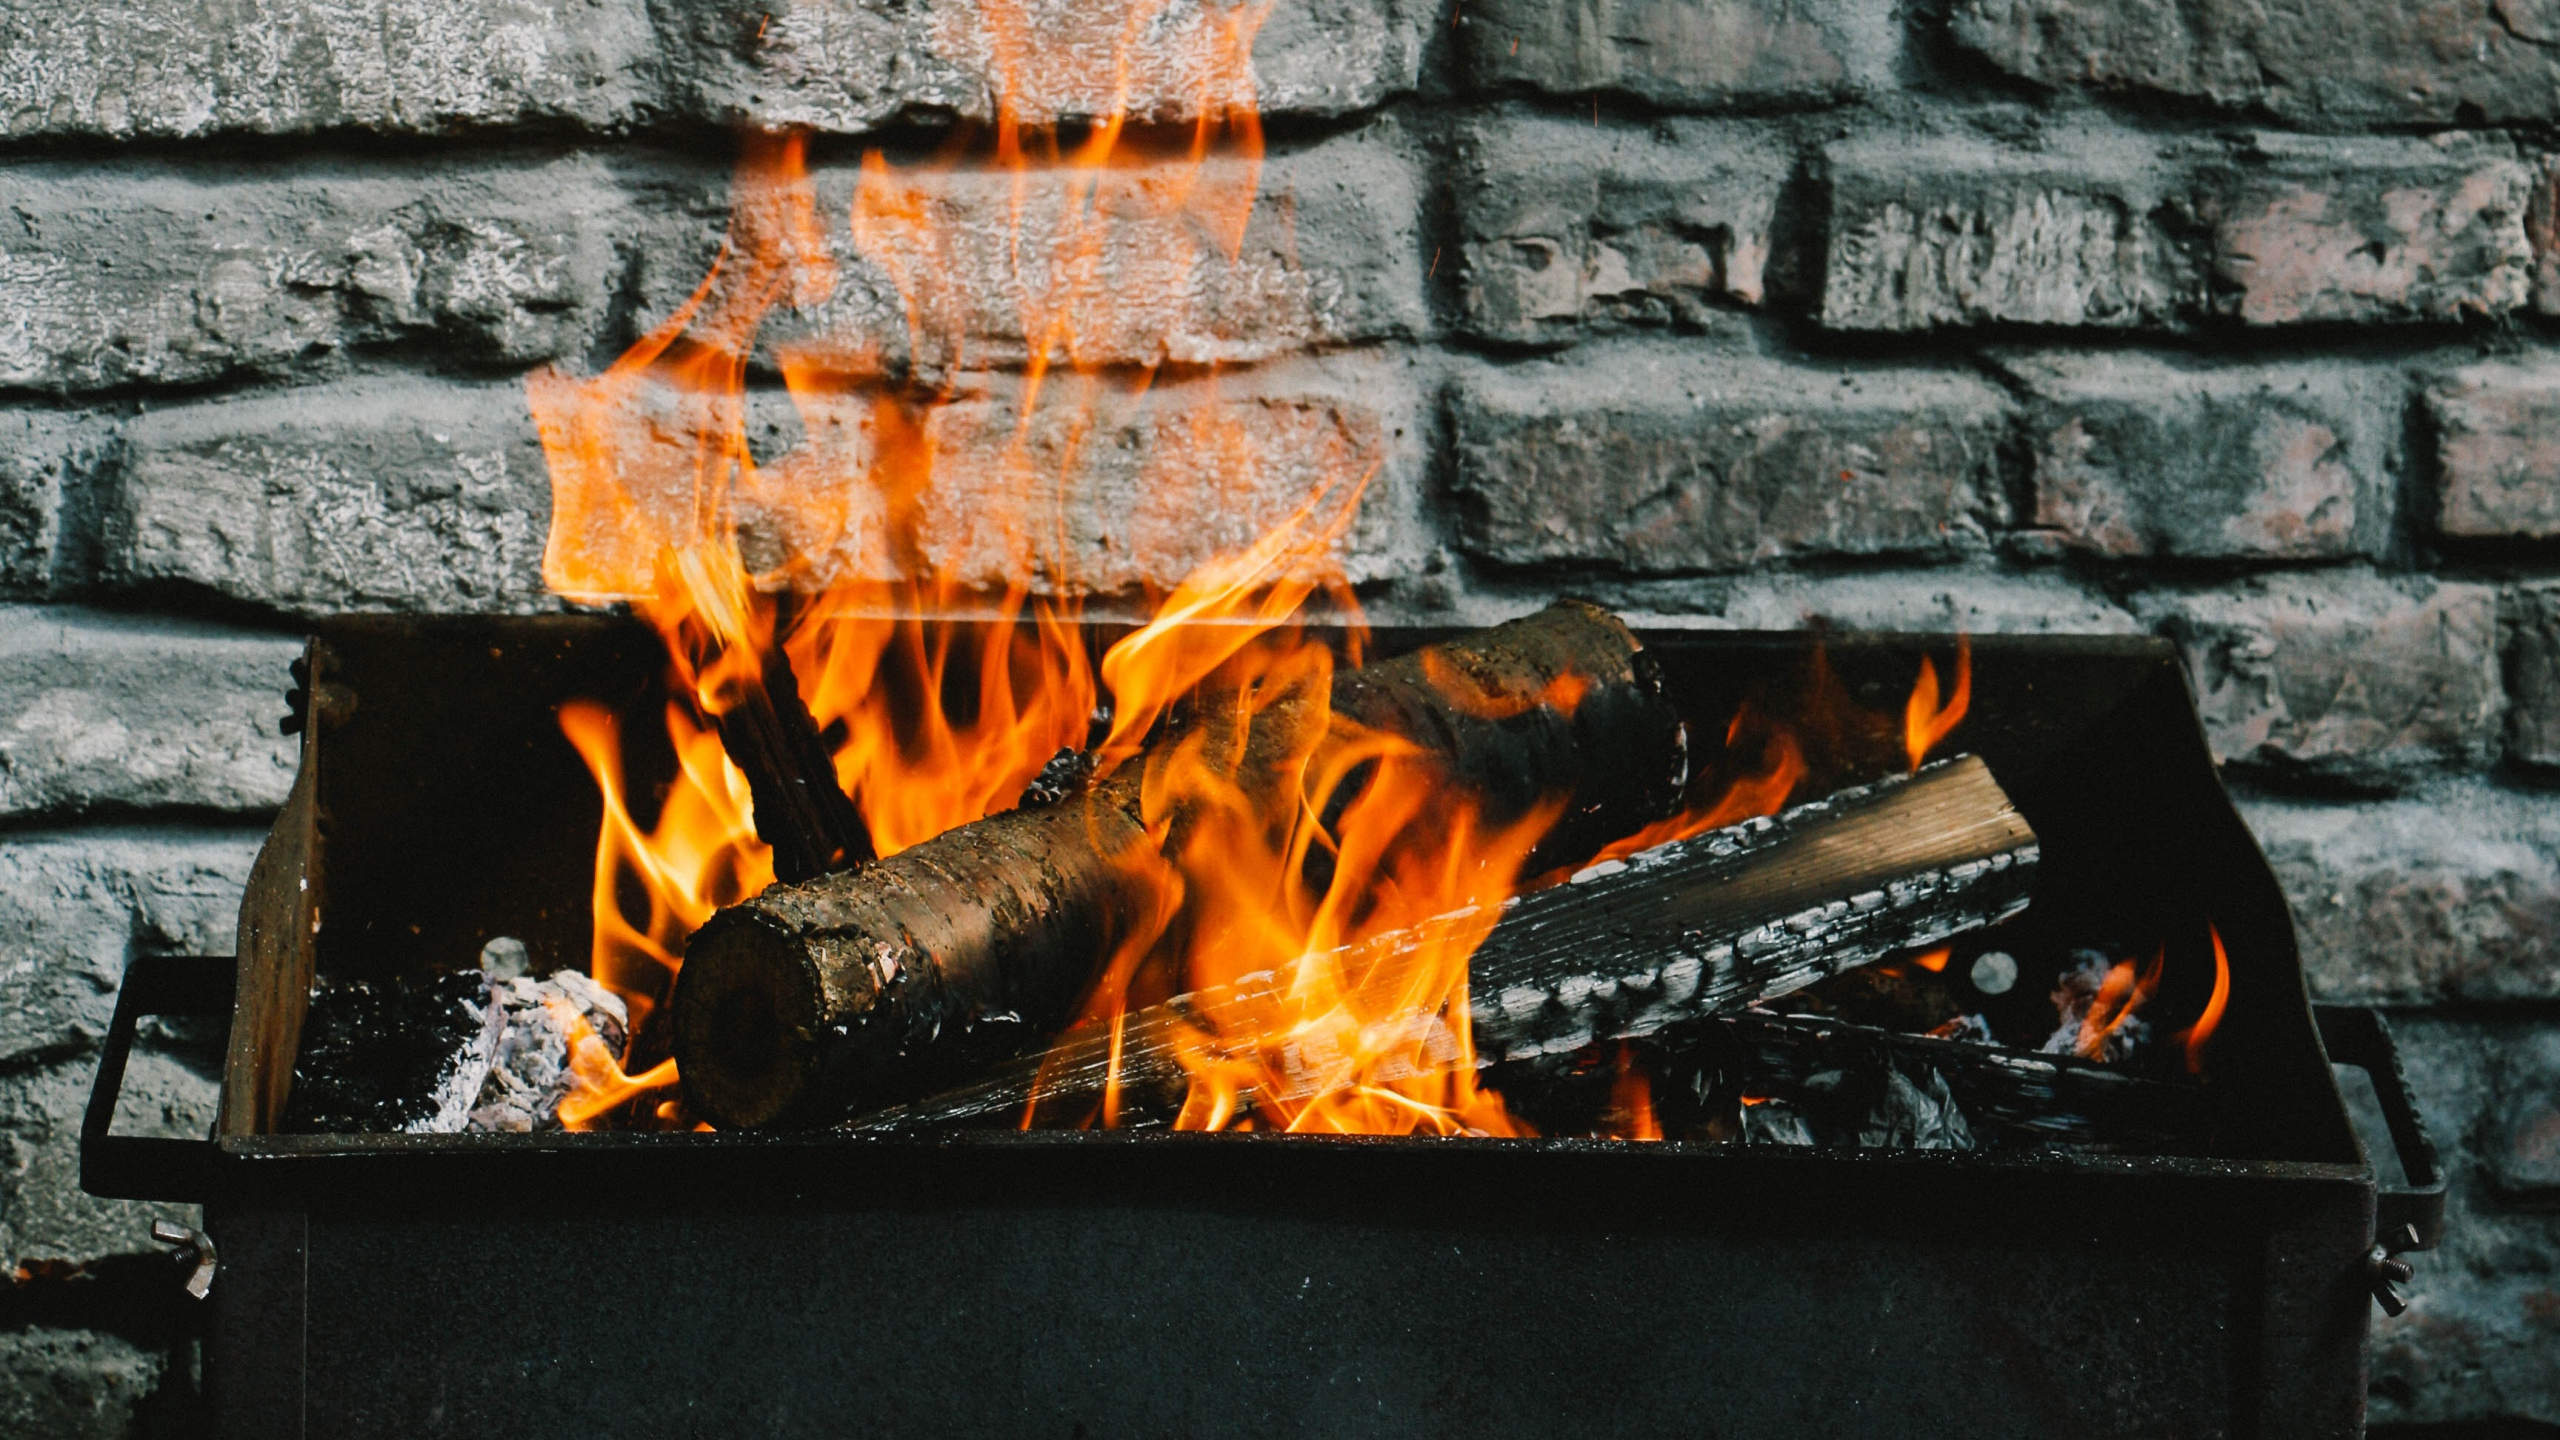 Wallpaper Of Firewood Fire Wall Barbecue Background Hd